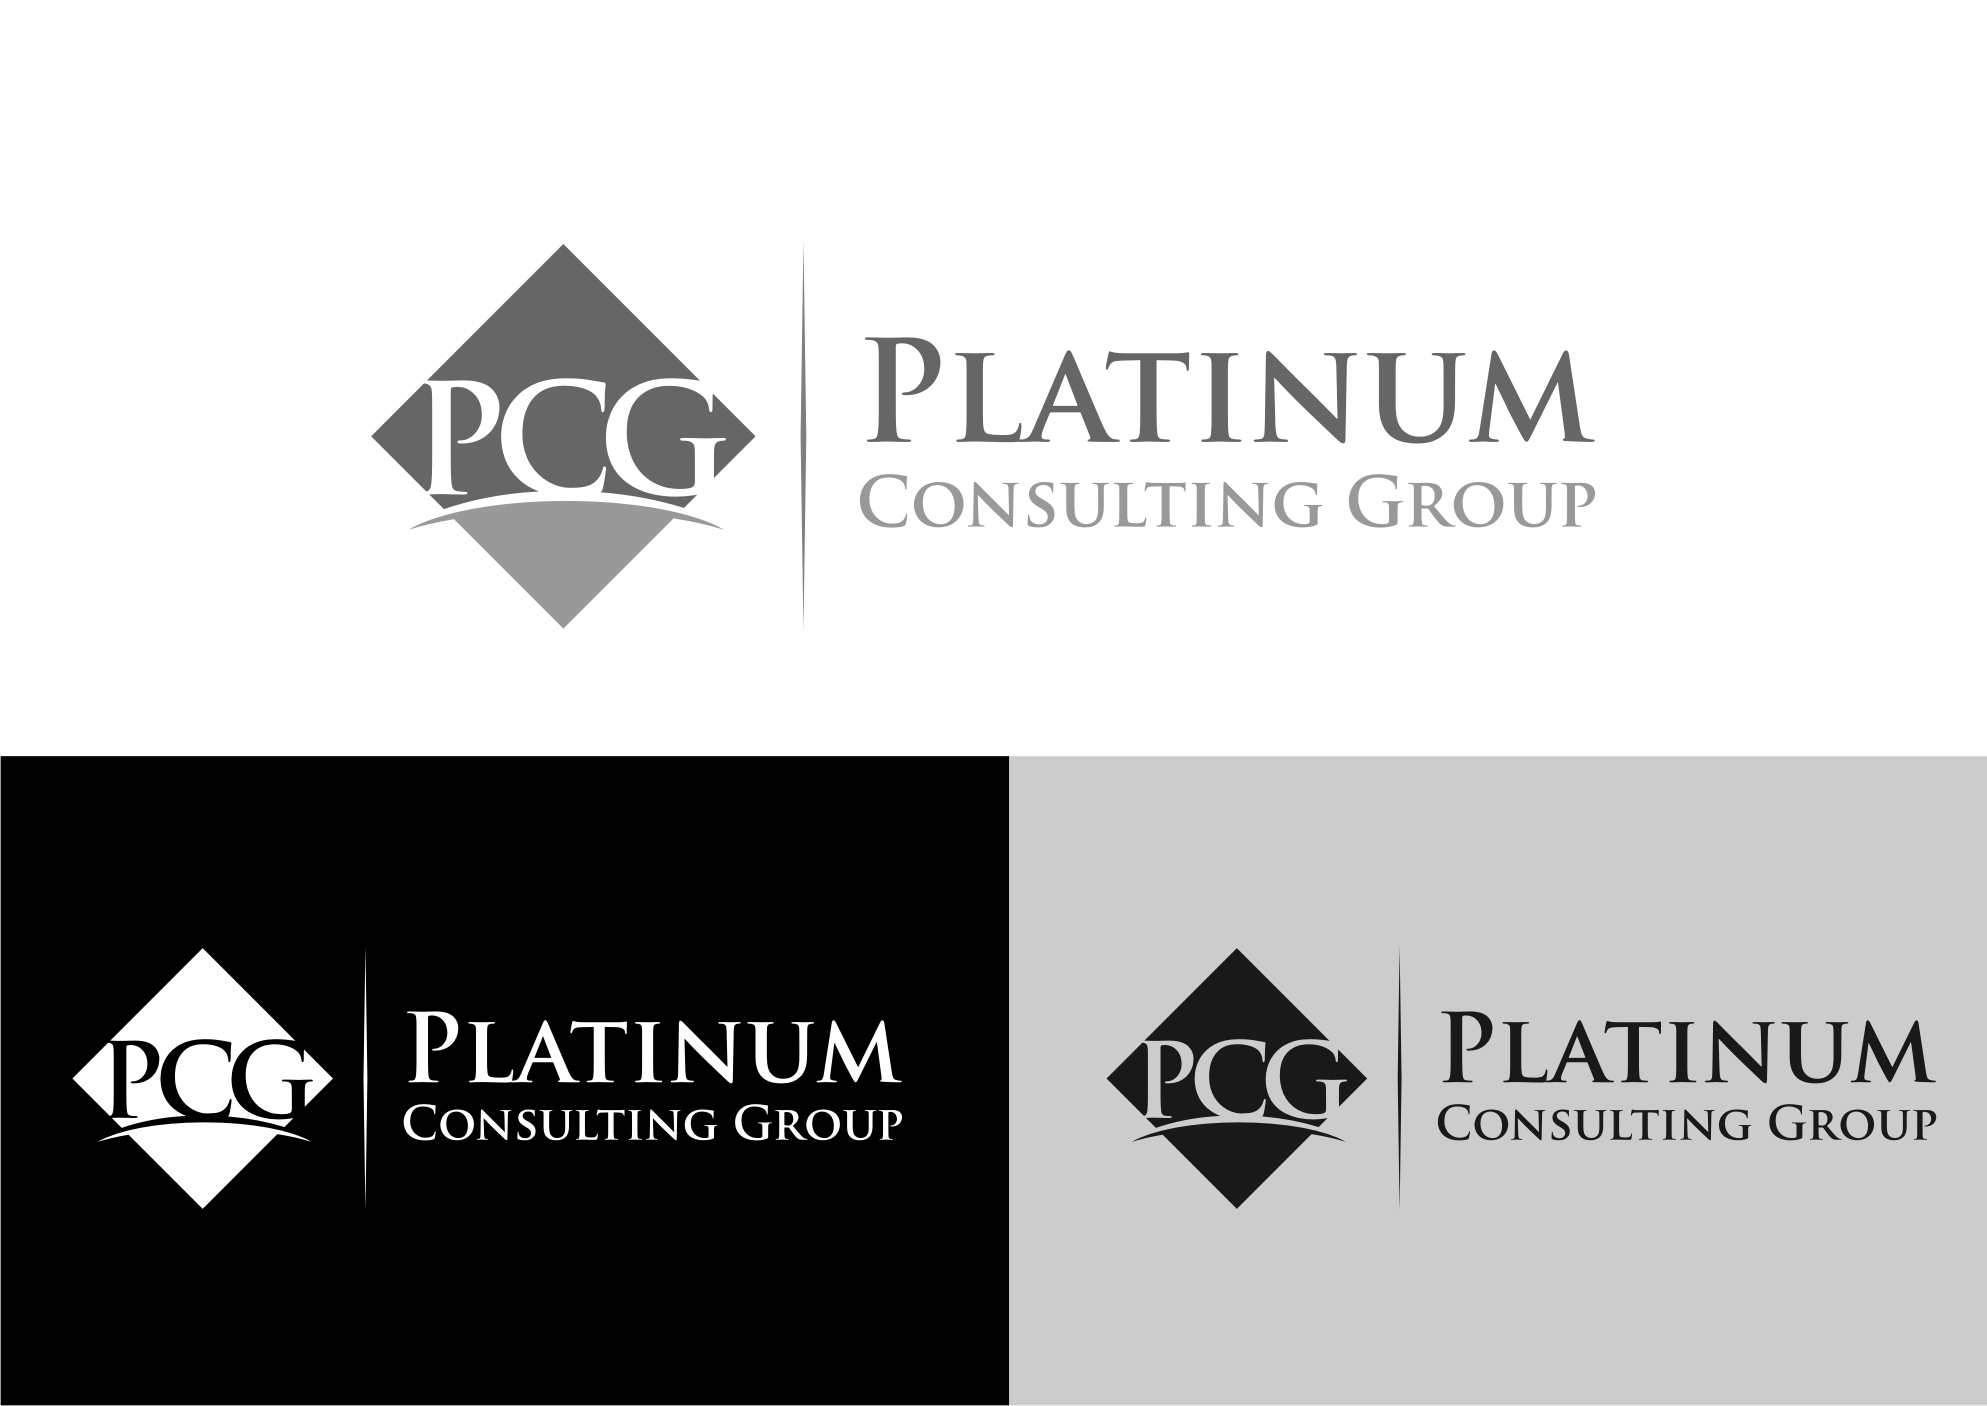 Logo Design by Tille Famz - Entry No. 20 in the Logo Design Contest Captivating Logo Design for Platinum Consulting Group.